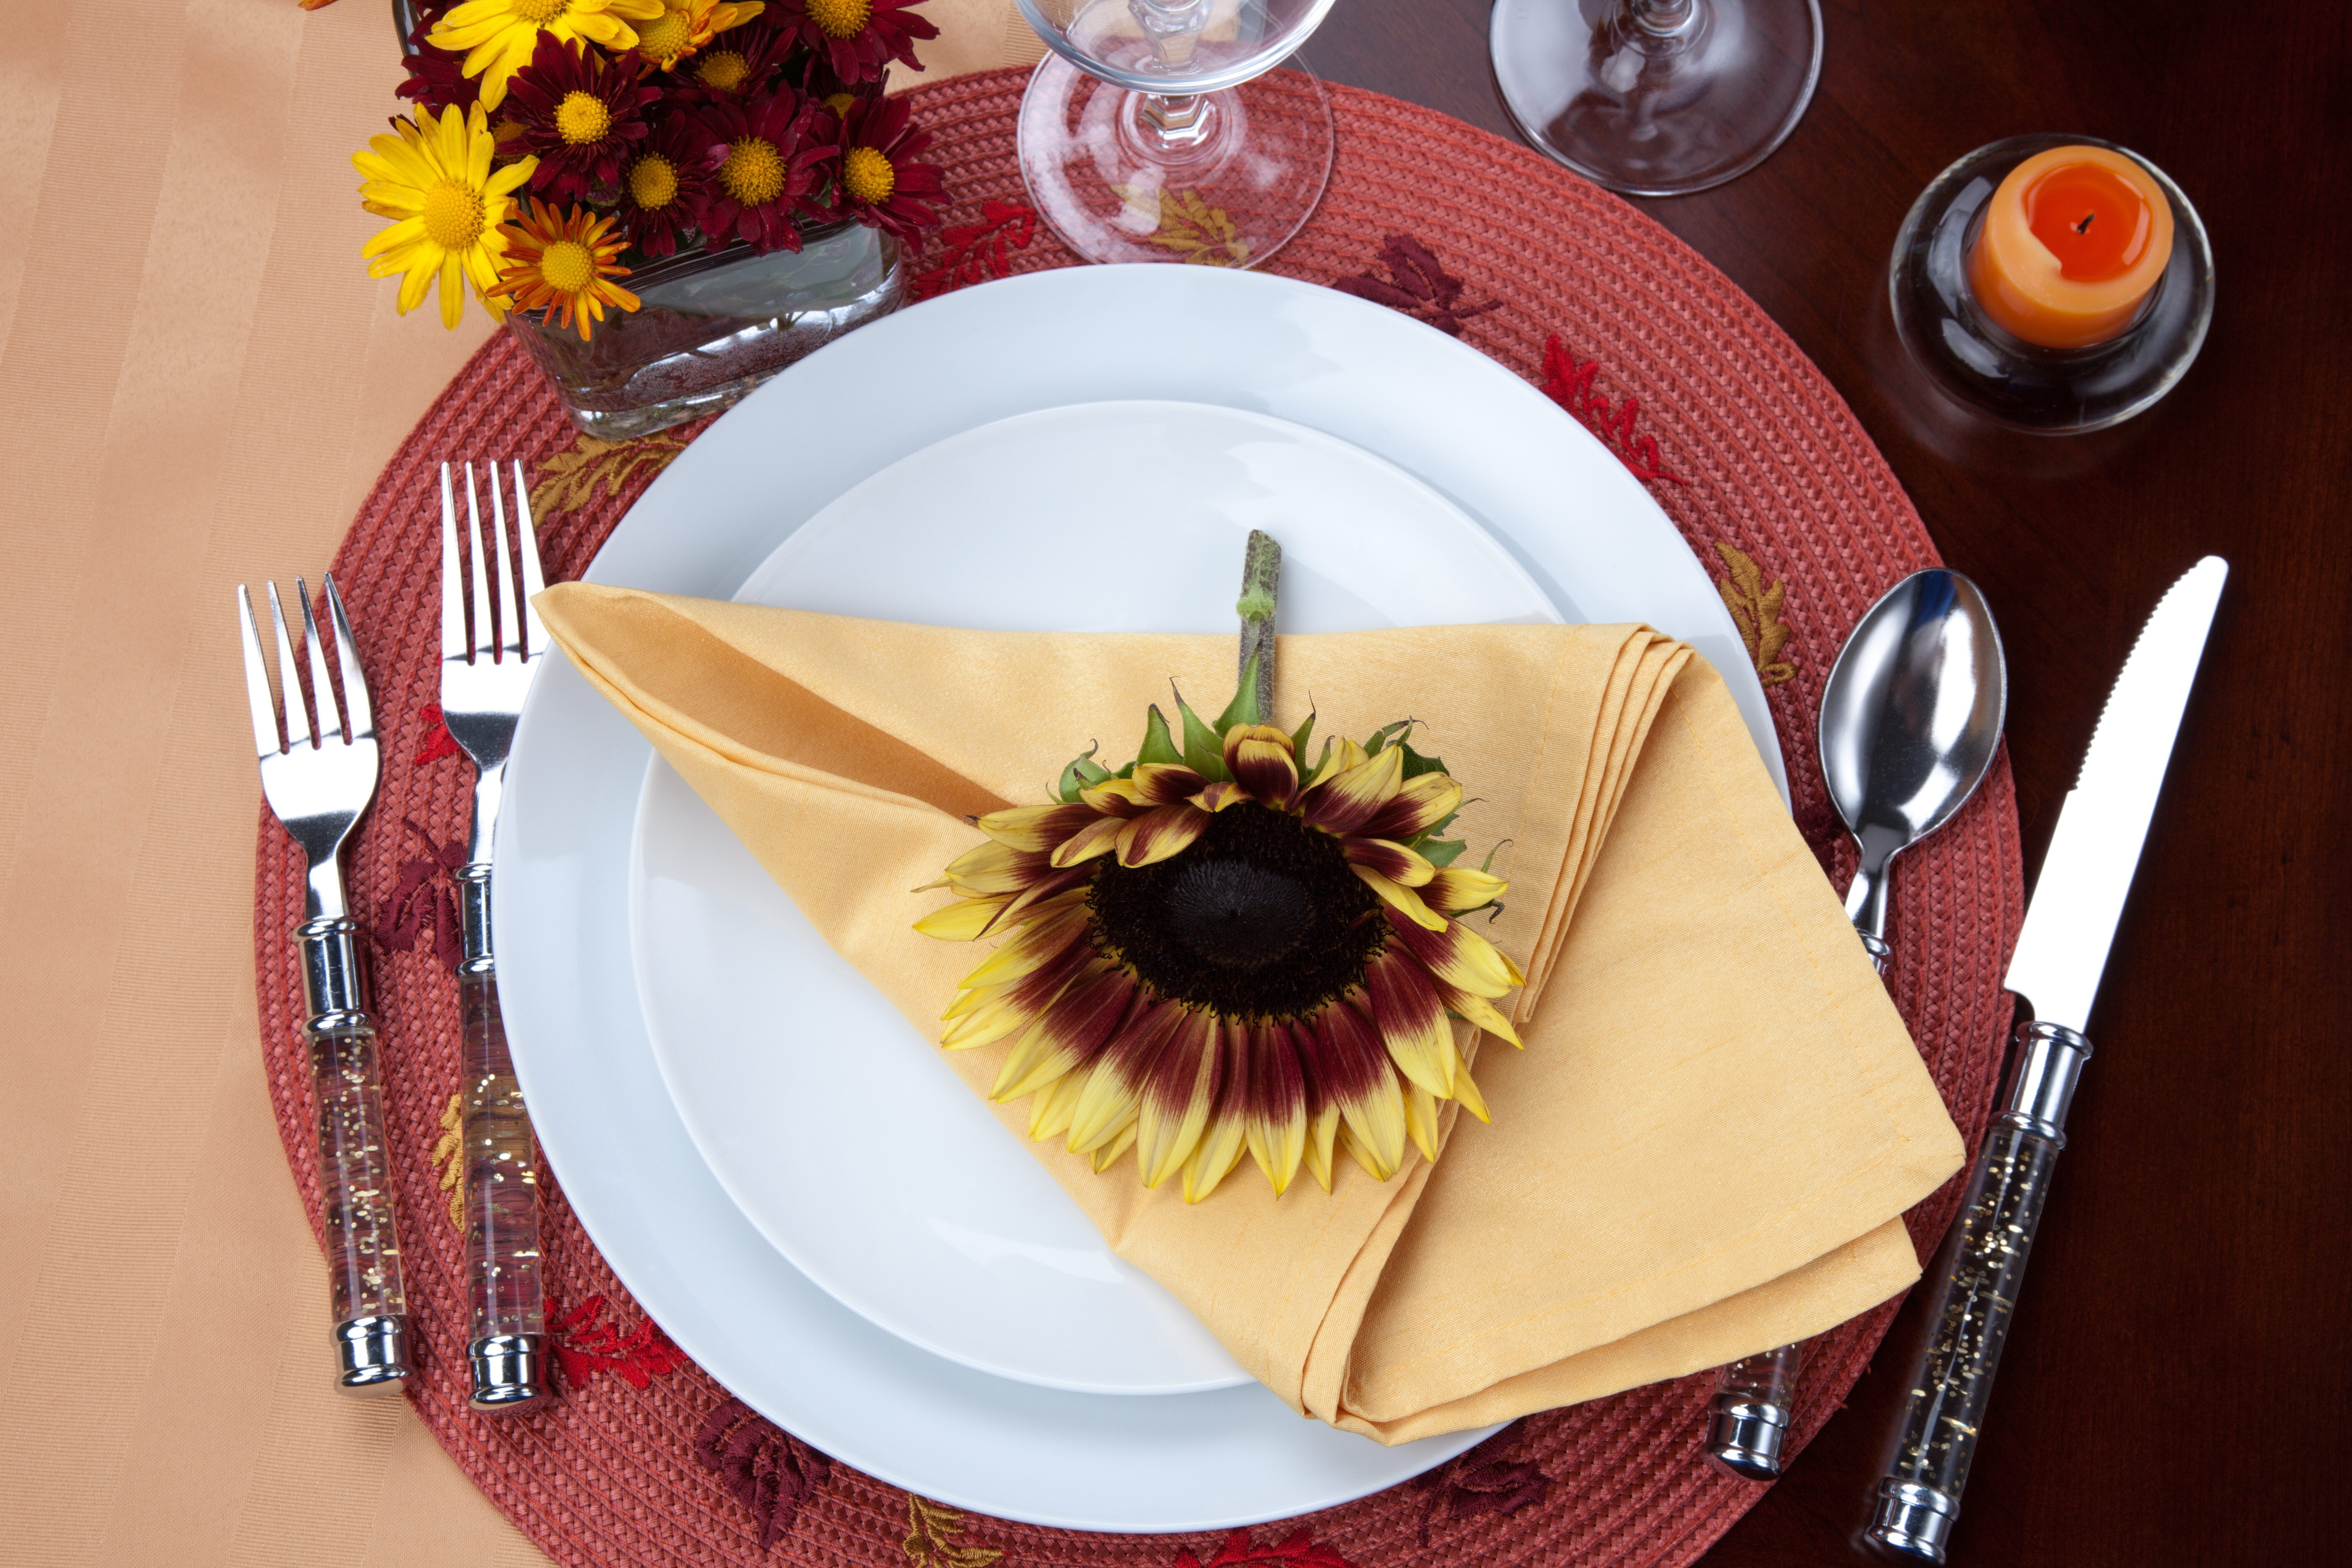 table_decoration_fall_flowers_sunflowers_dishes_napkin_78749_5616x3744